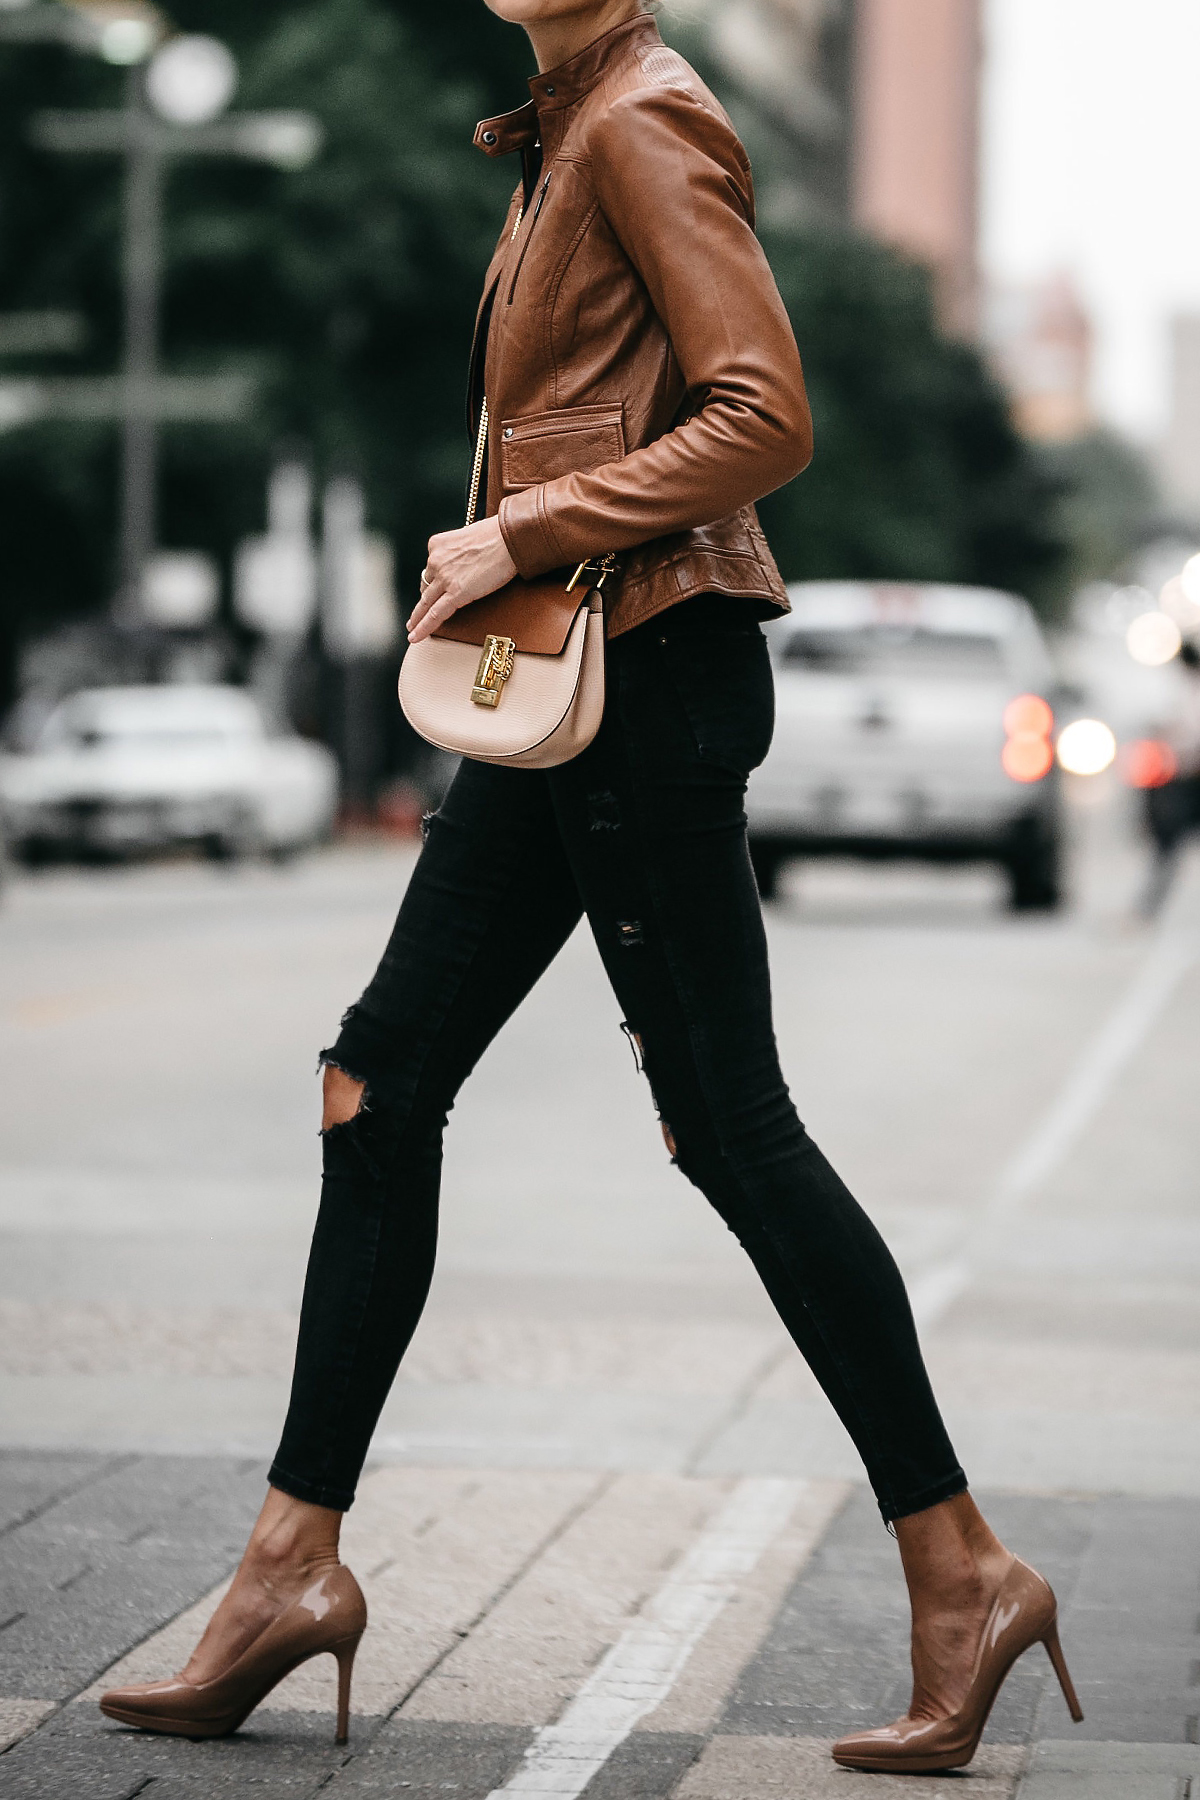 Tan Leather Moto Jacket Black Ripped Skinny Jeans Outfit Chloe Drew Handbag Christian Louboutin Nude Pumps Fashion Jackson Dallas Blogger Fashion Blogger Street Style